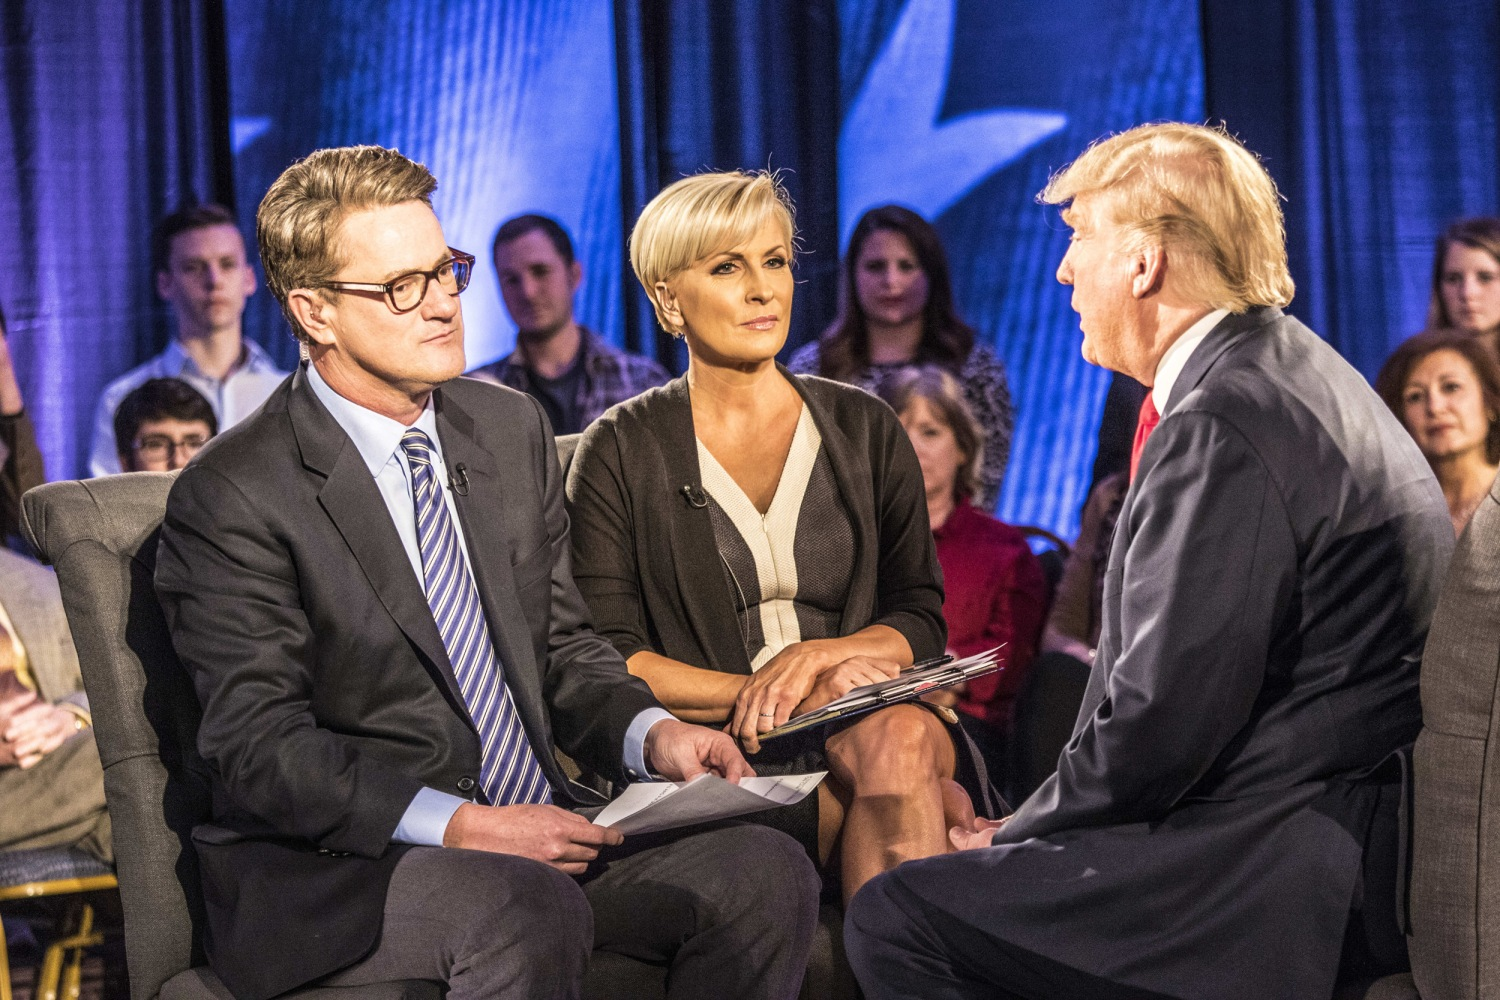 Image Joe Scarborough and Mika Brzezinski moderate a town hall with Donald Trump in Charleston